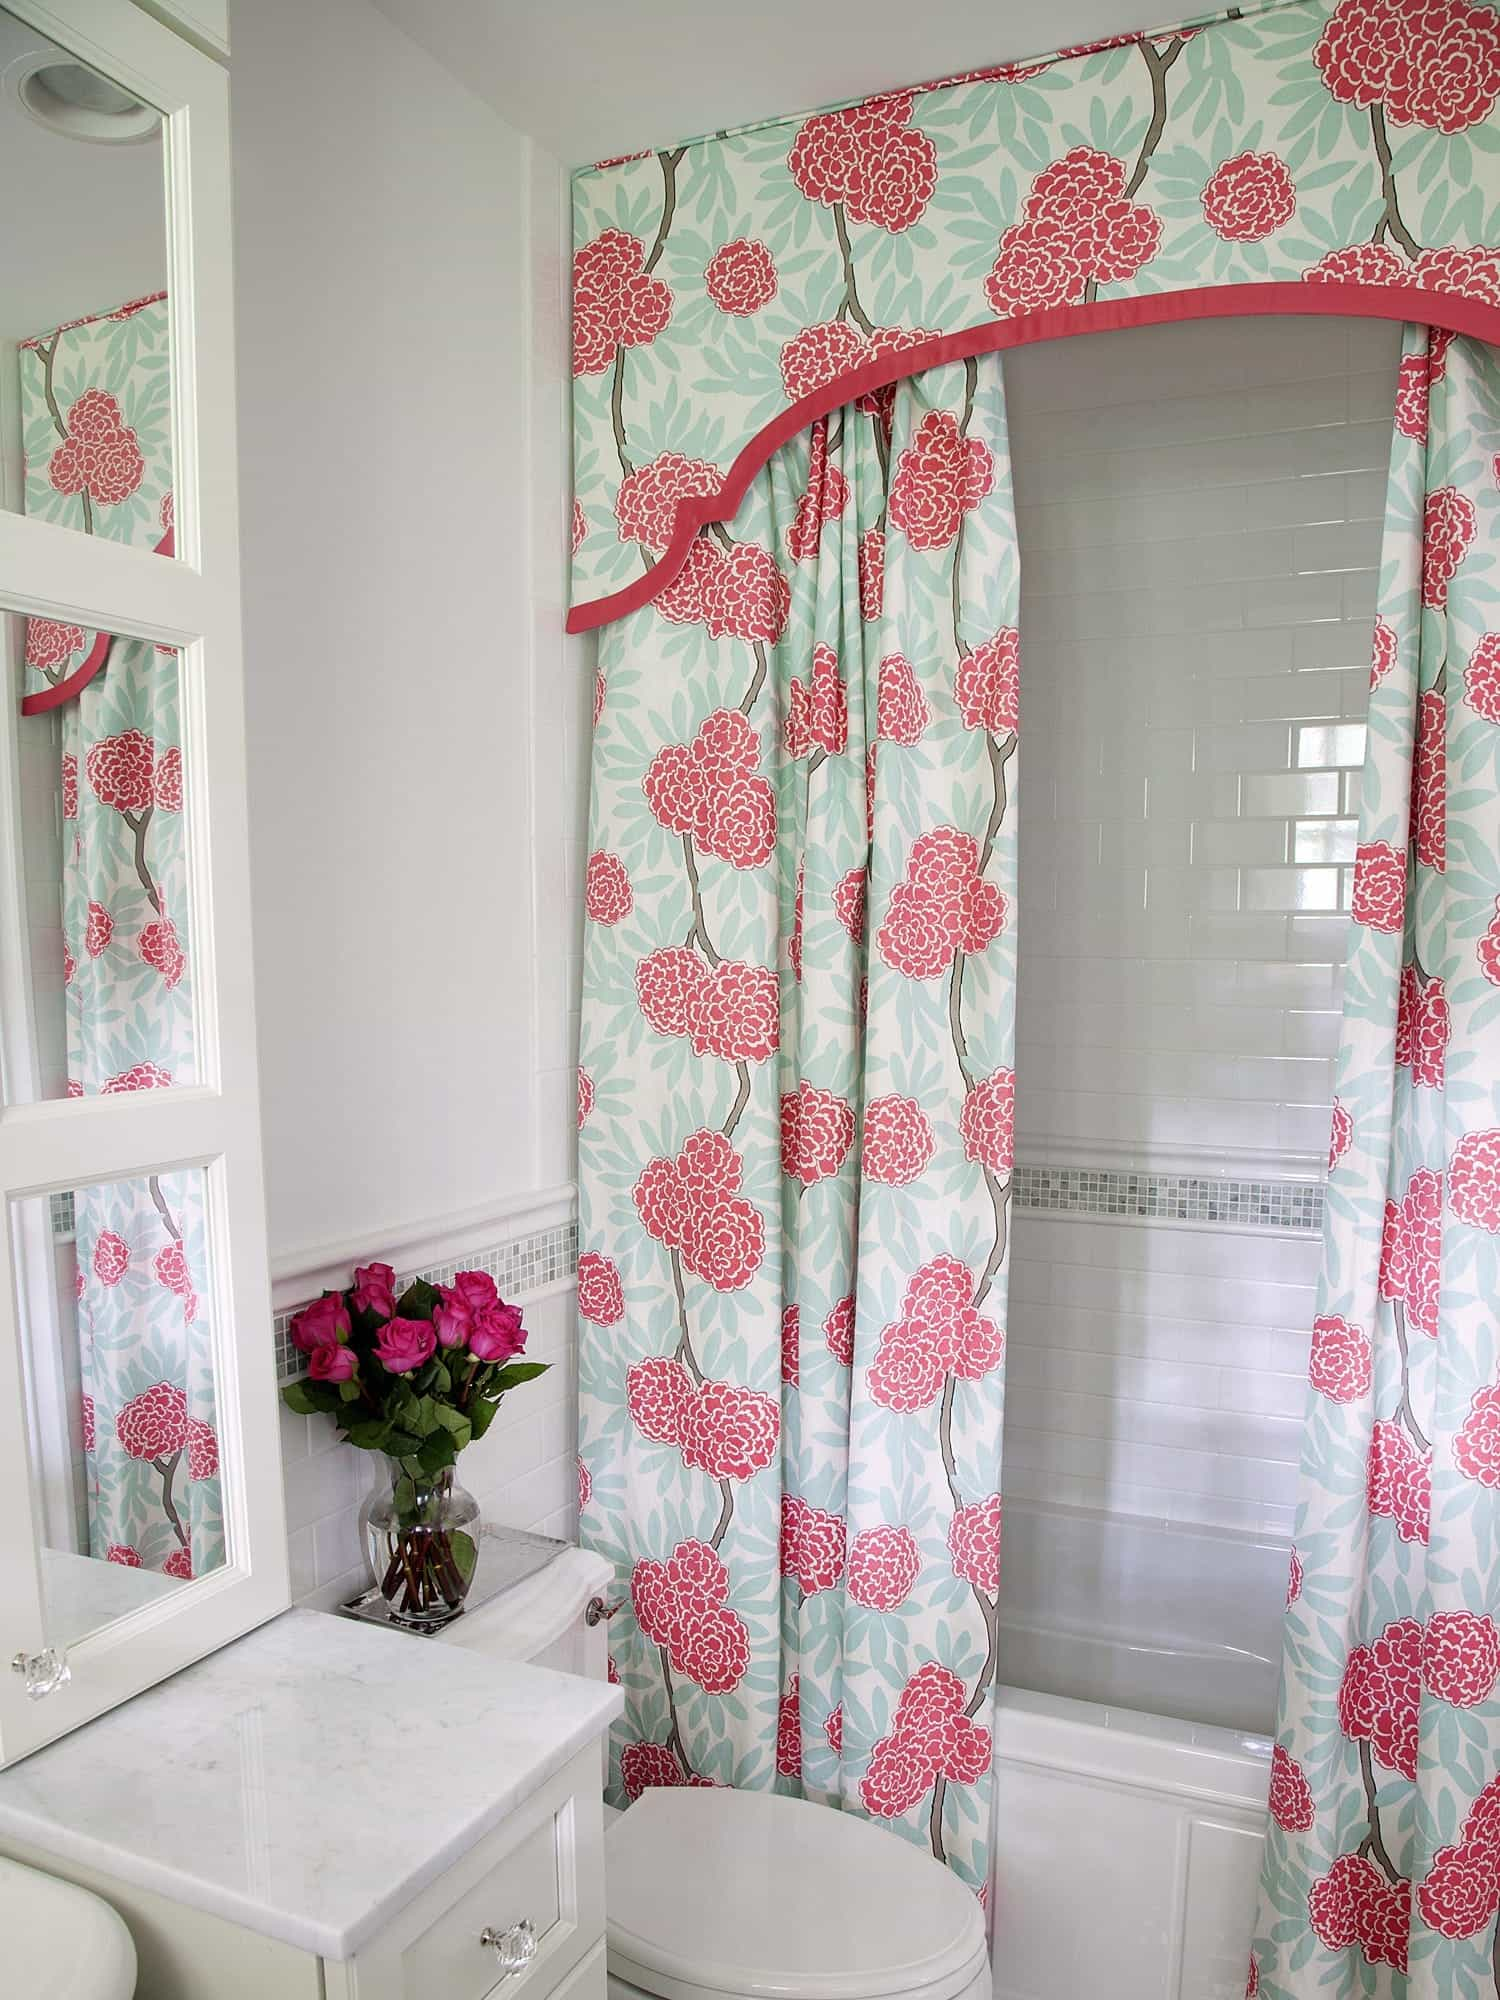 Colorful Floral Curtain In Modern Style For Bathroom (View 12 of 14)